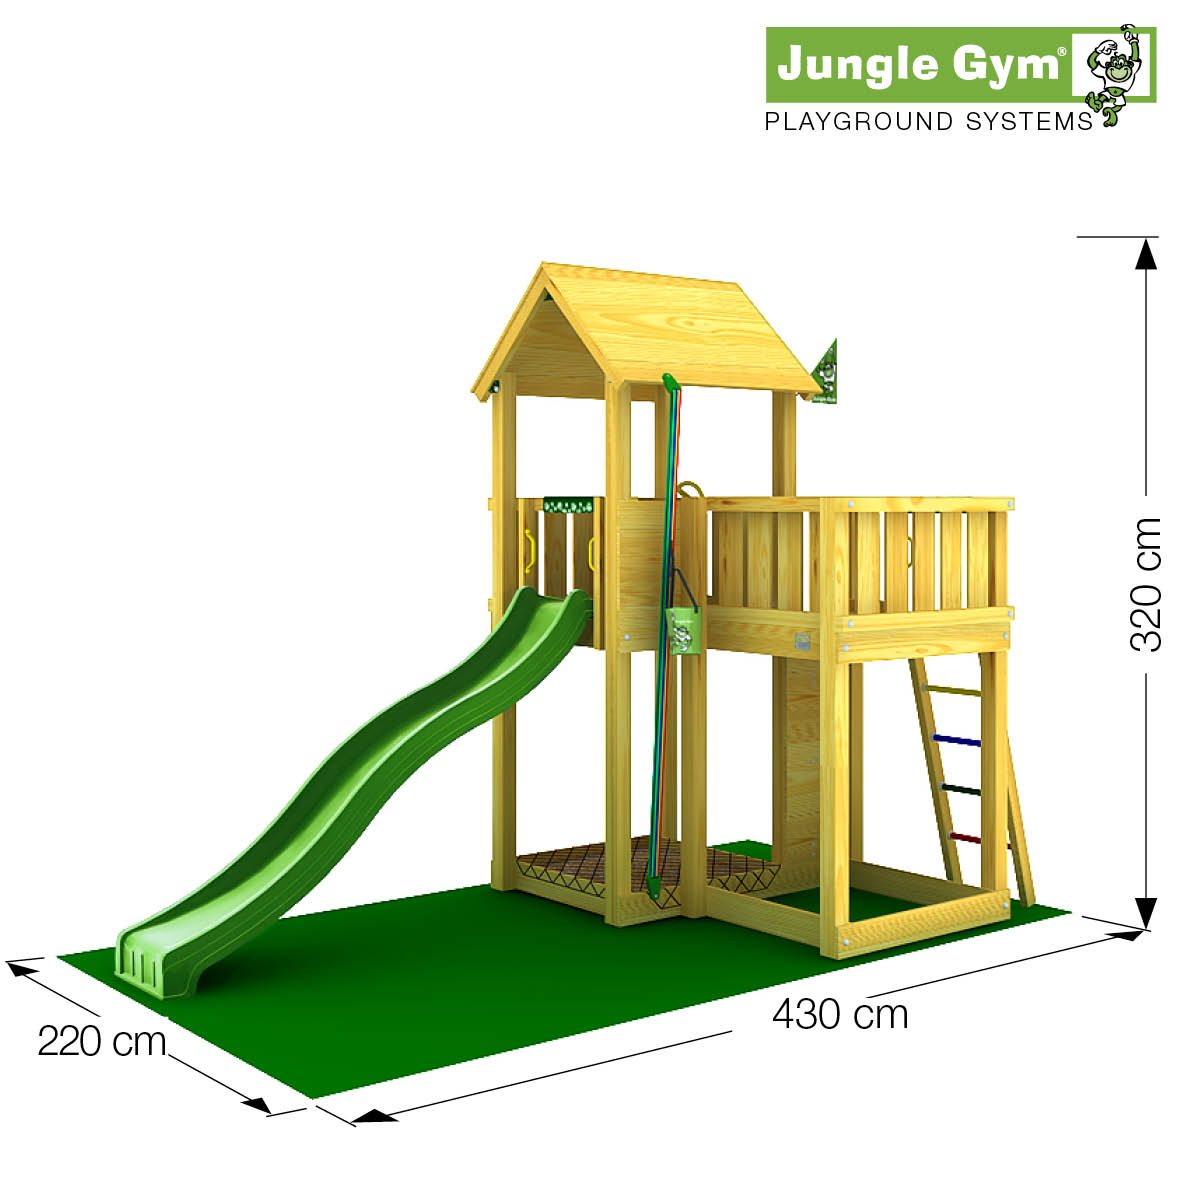 801_009_1581_Jungle_Mansion_G_10x10